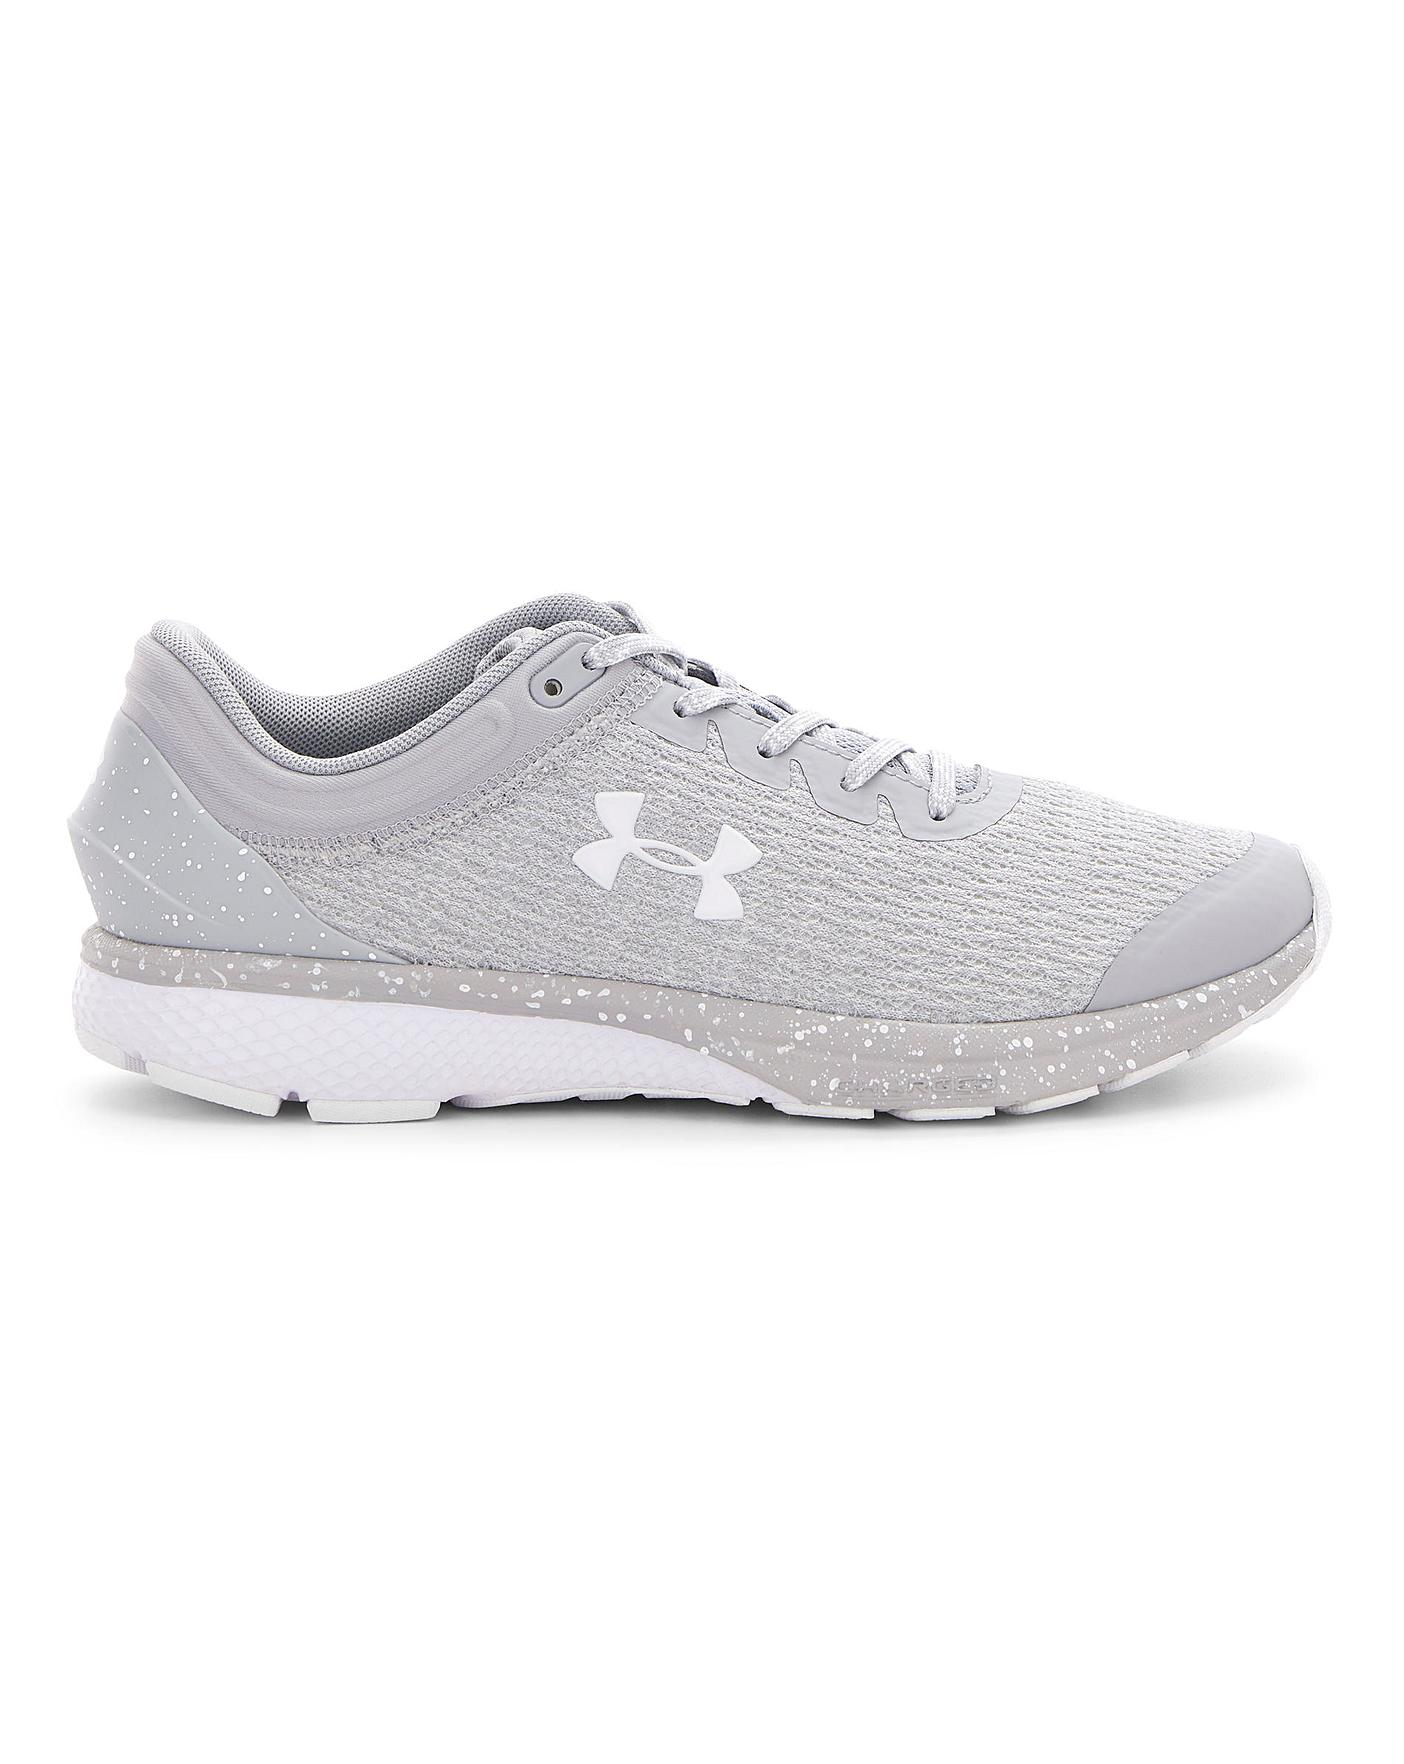 lb Anécdota Te mejorarás  Under Armour Charged Escape 3 Trainers | Simply Be